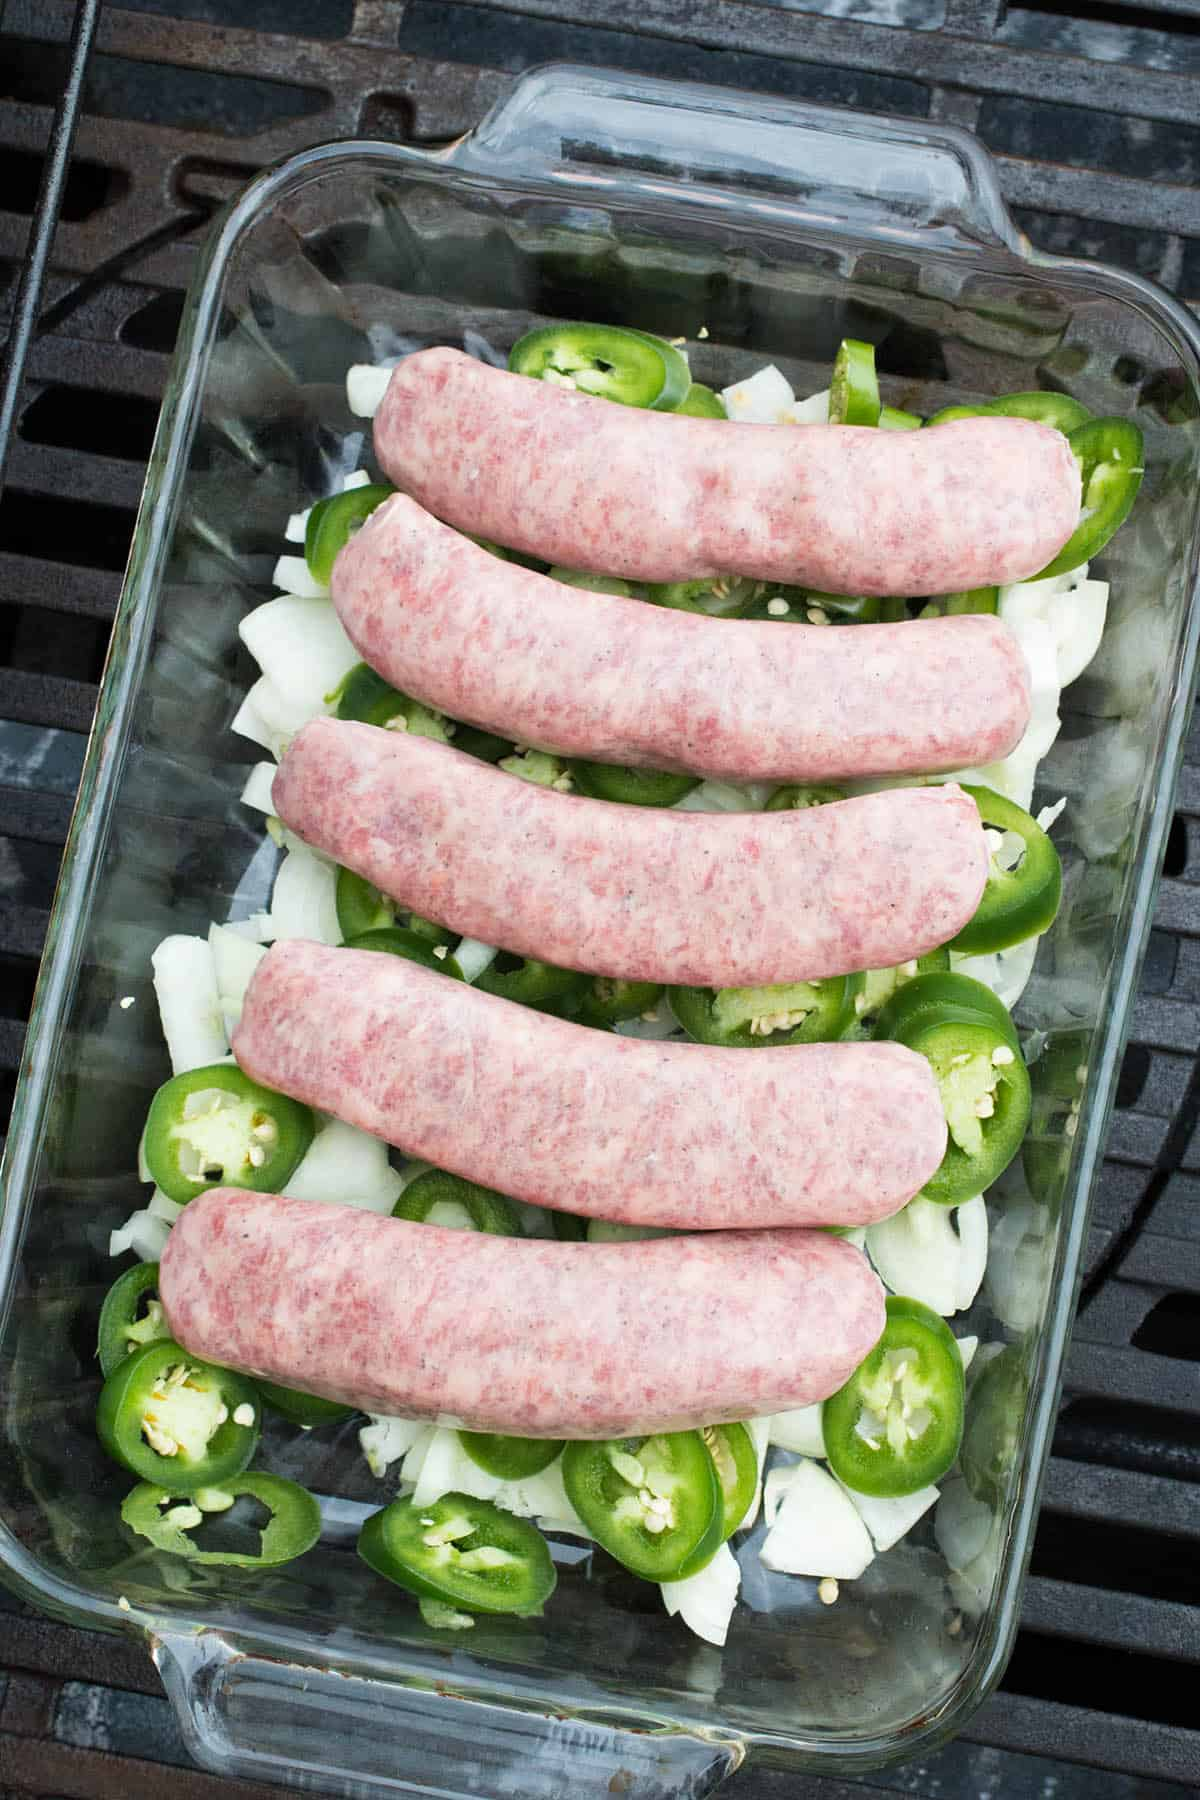 How to Make Beer Brats - Layer the Sausages